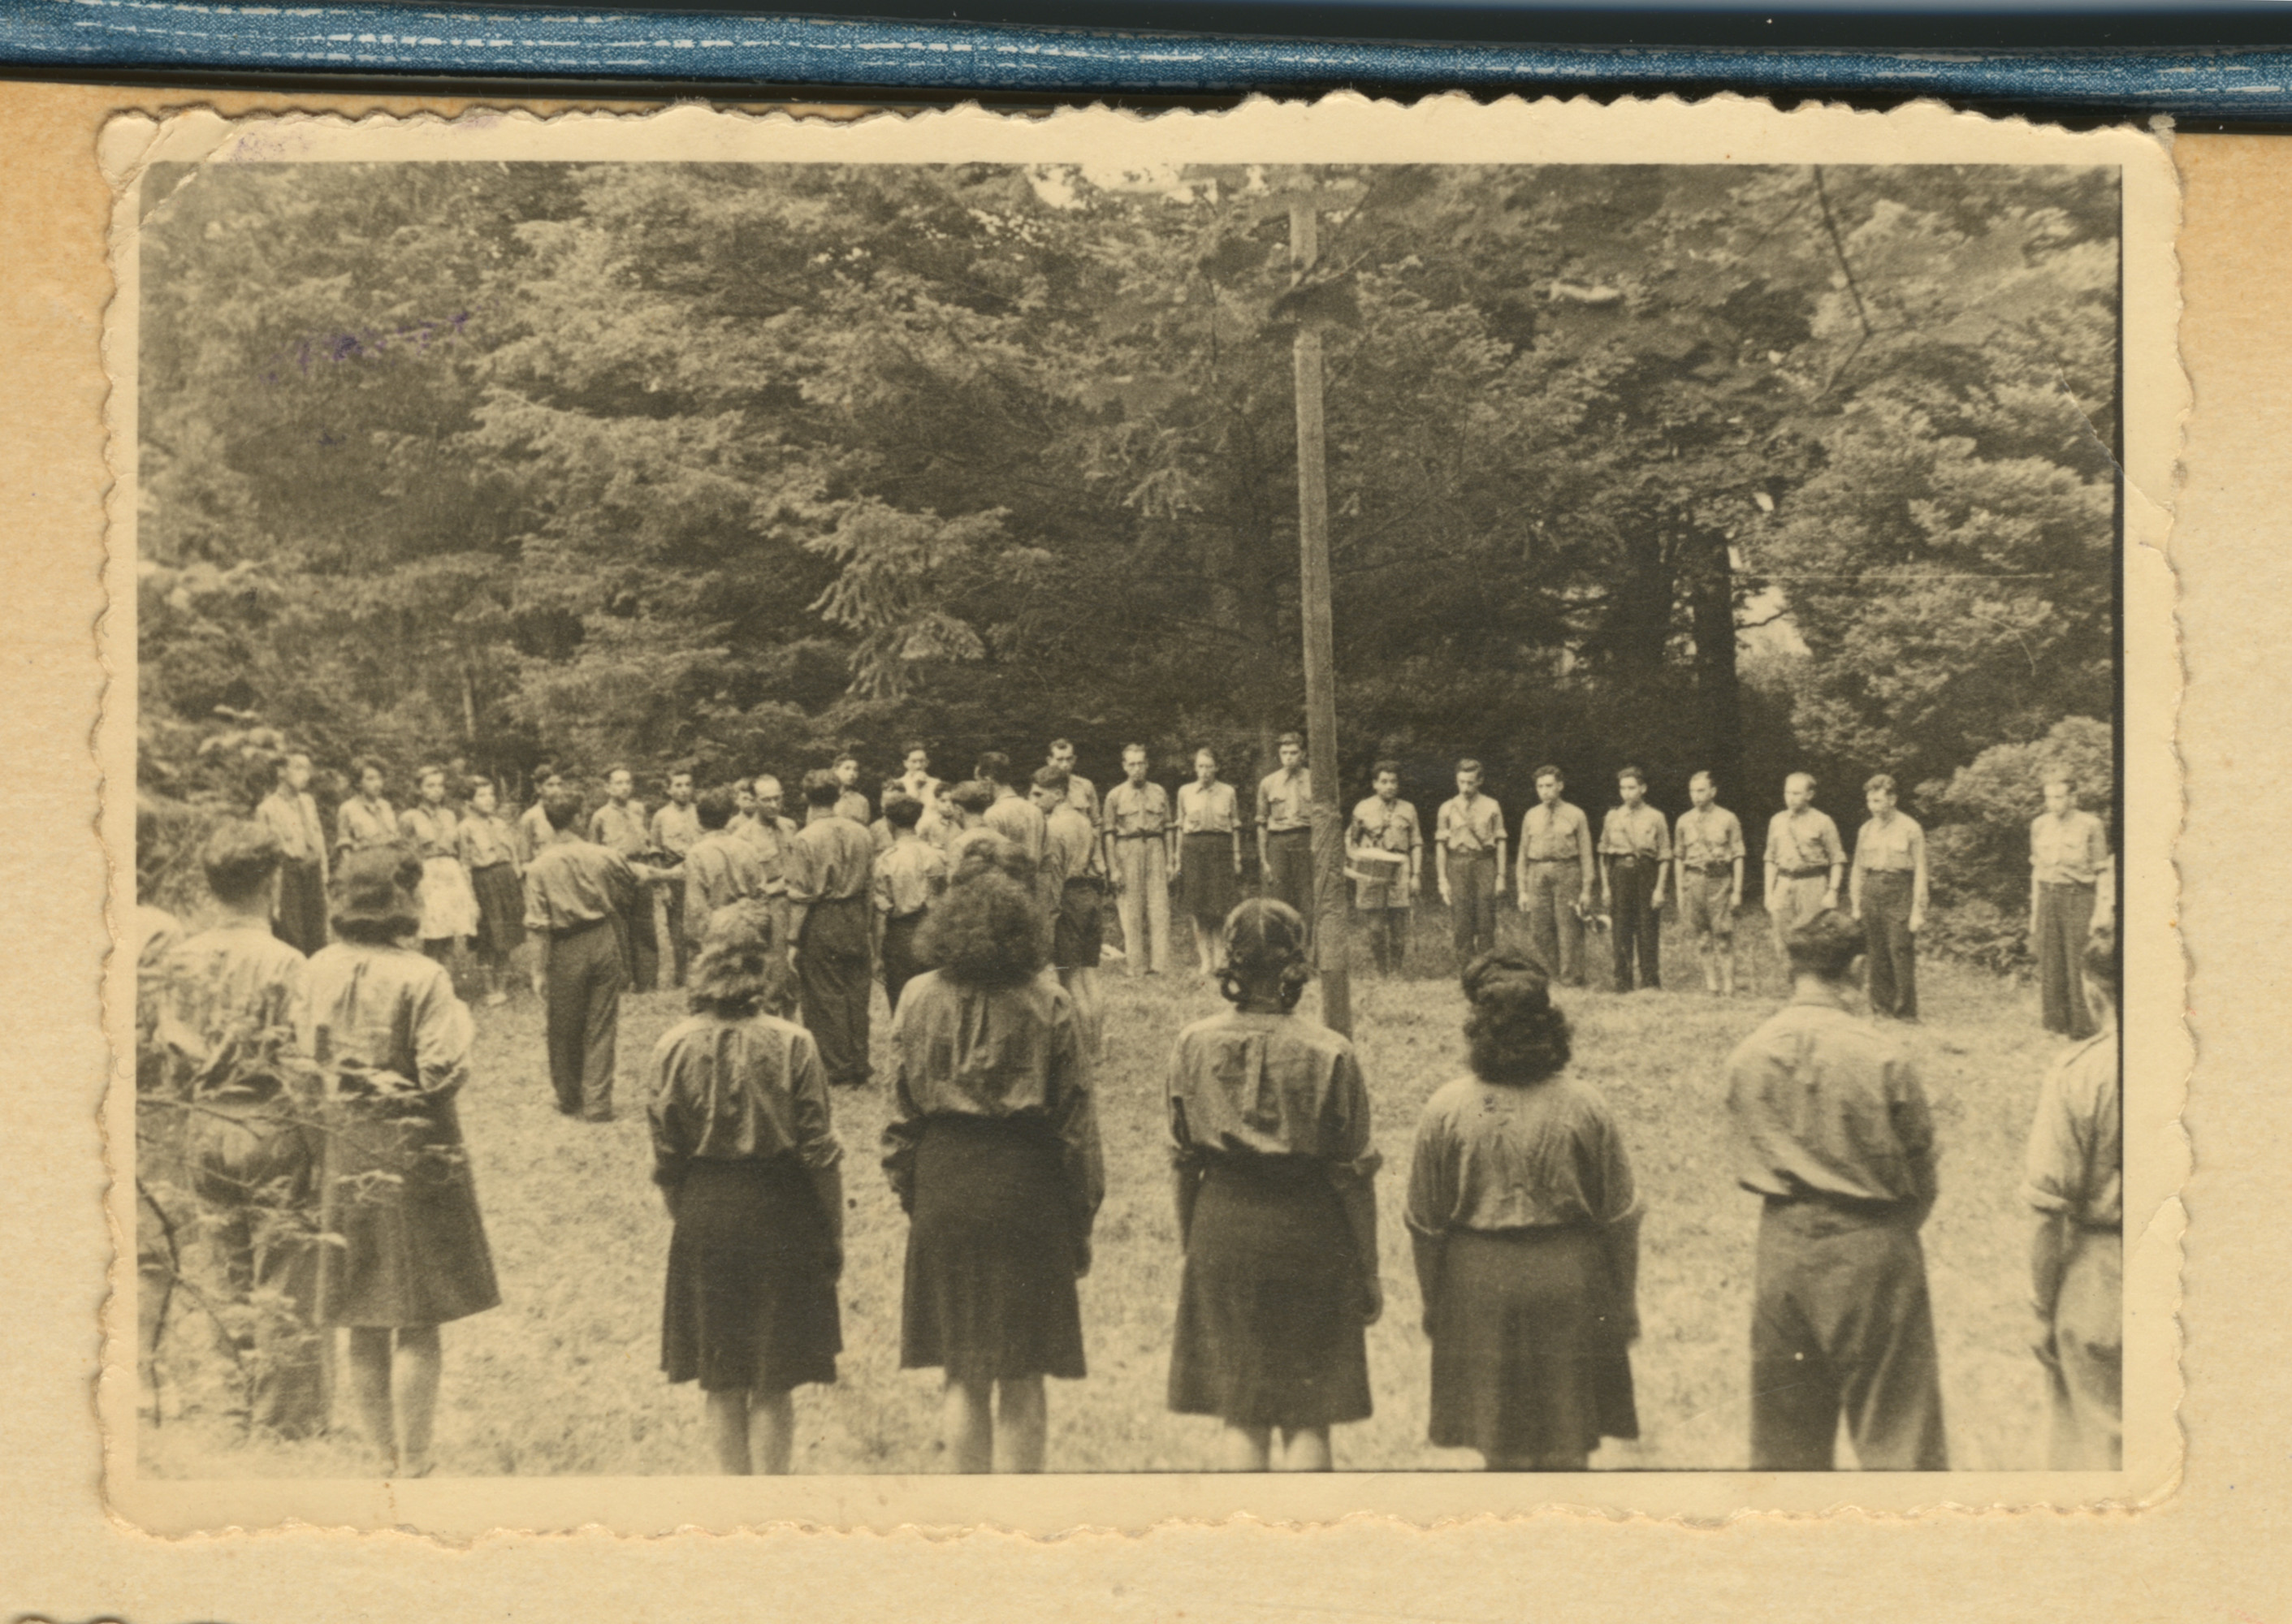 A postwar youth group conducts a ceremony, probably in Lodz.